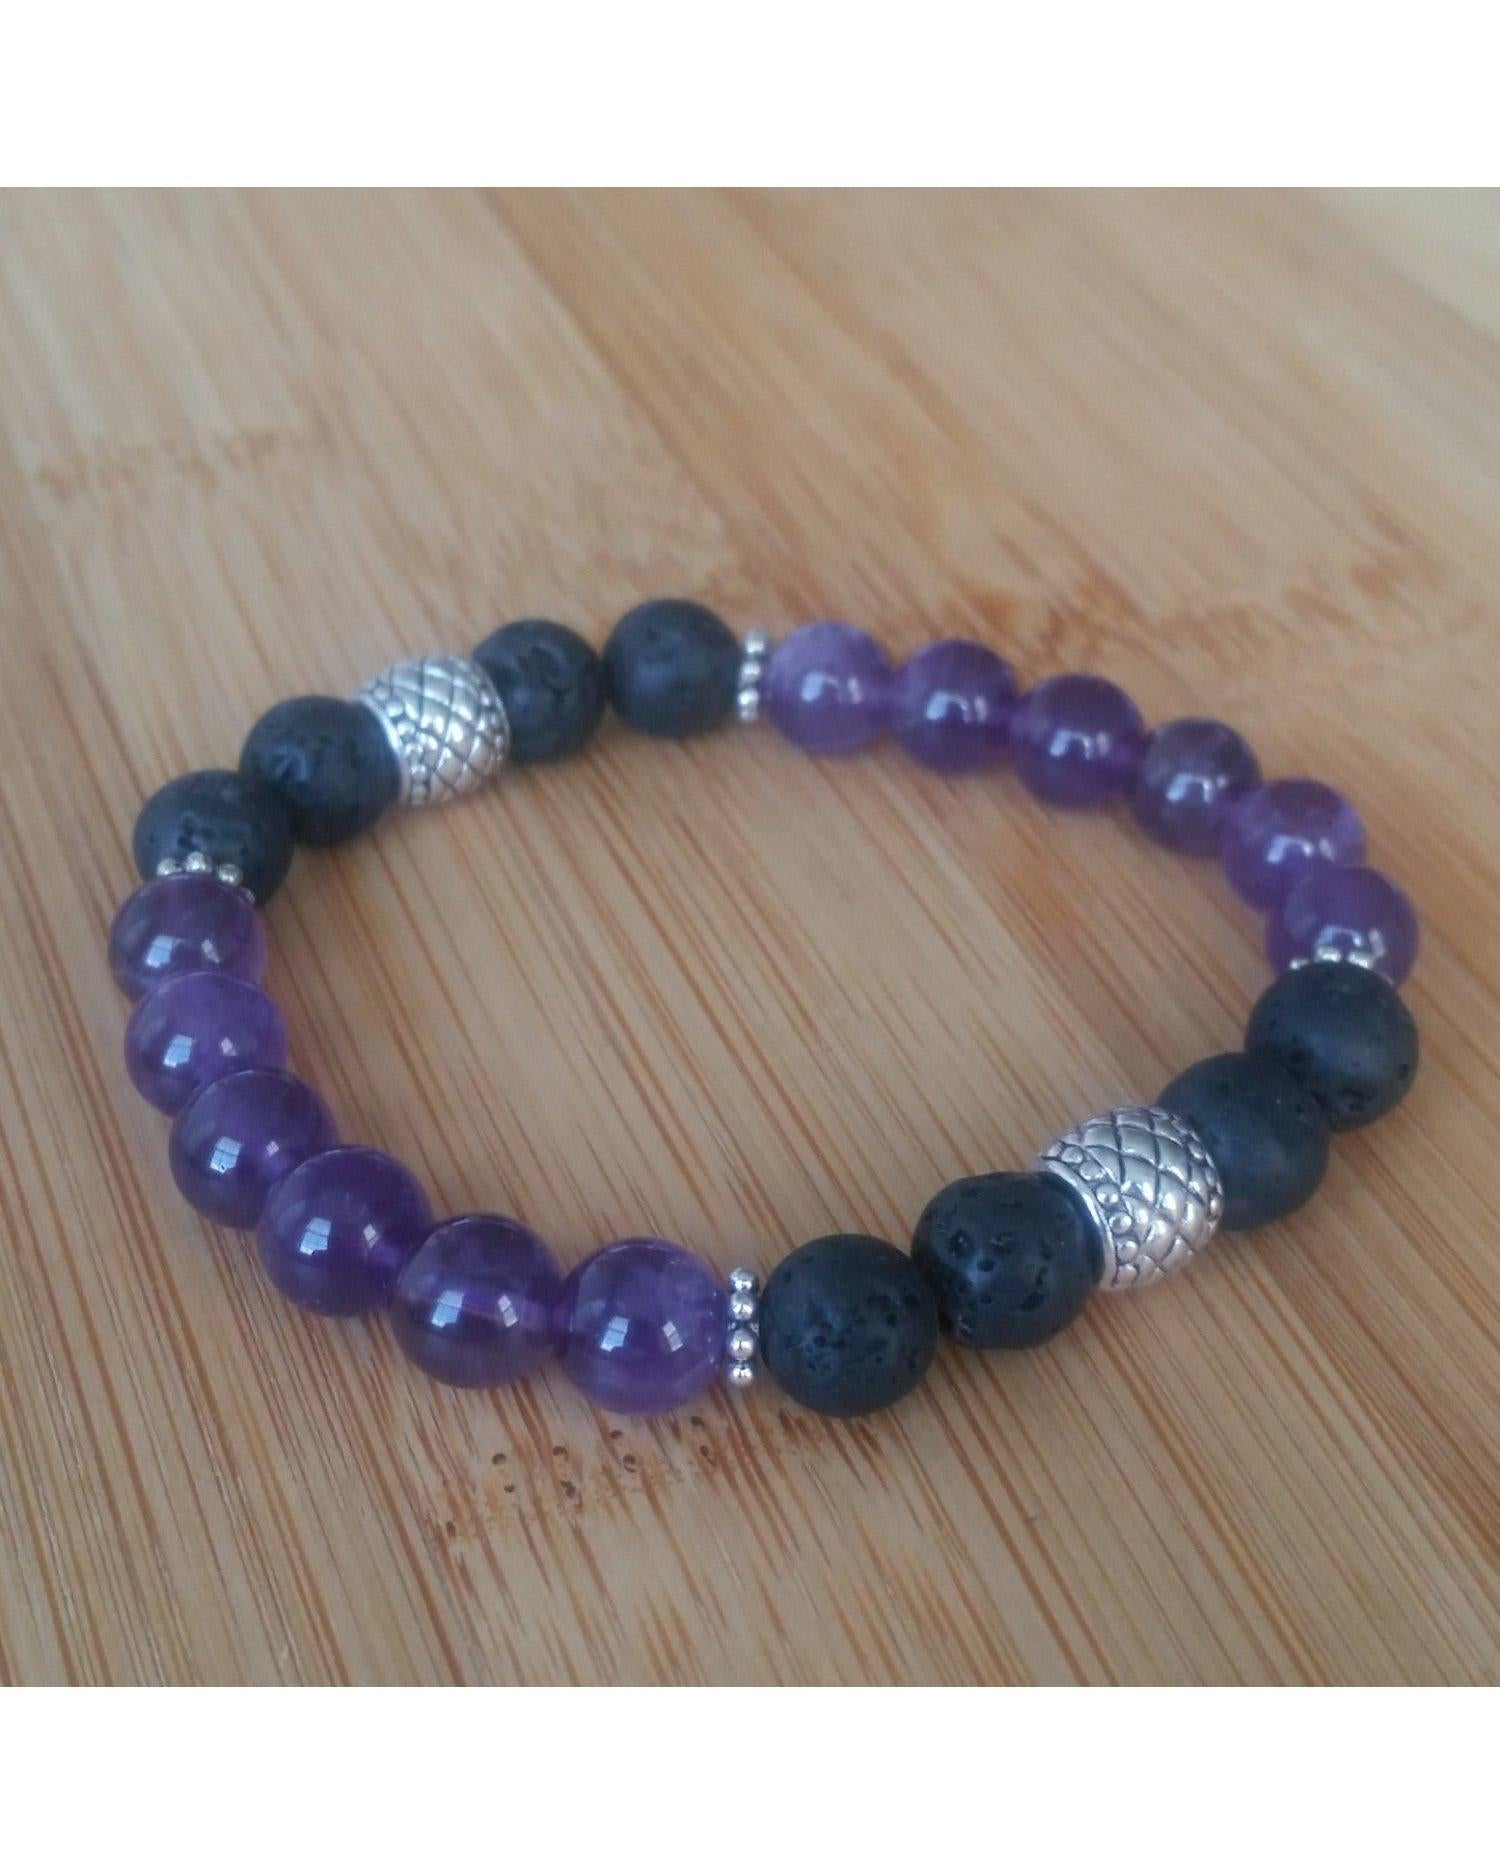 Purple Amethyst Semi-Precious Gemstone and Lava Rock 8mm Bead Essential Oil Aromatherapy Diffuser Stretch Bracelet P003 - Essentially Elegant